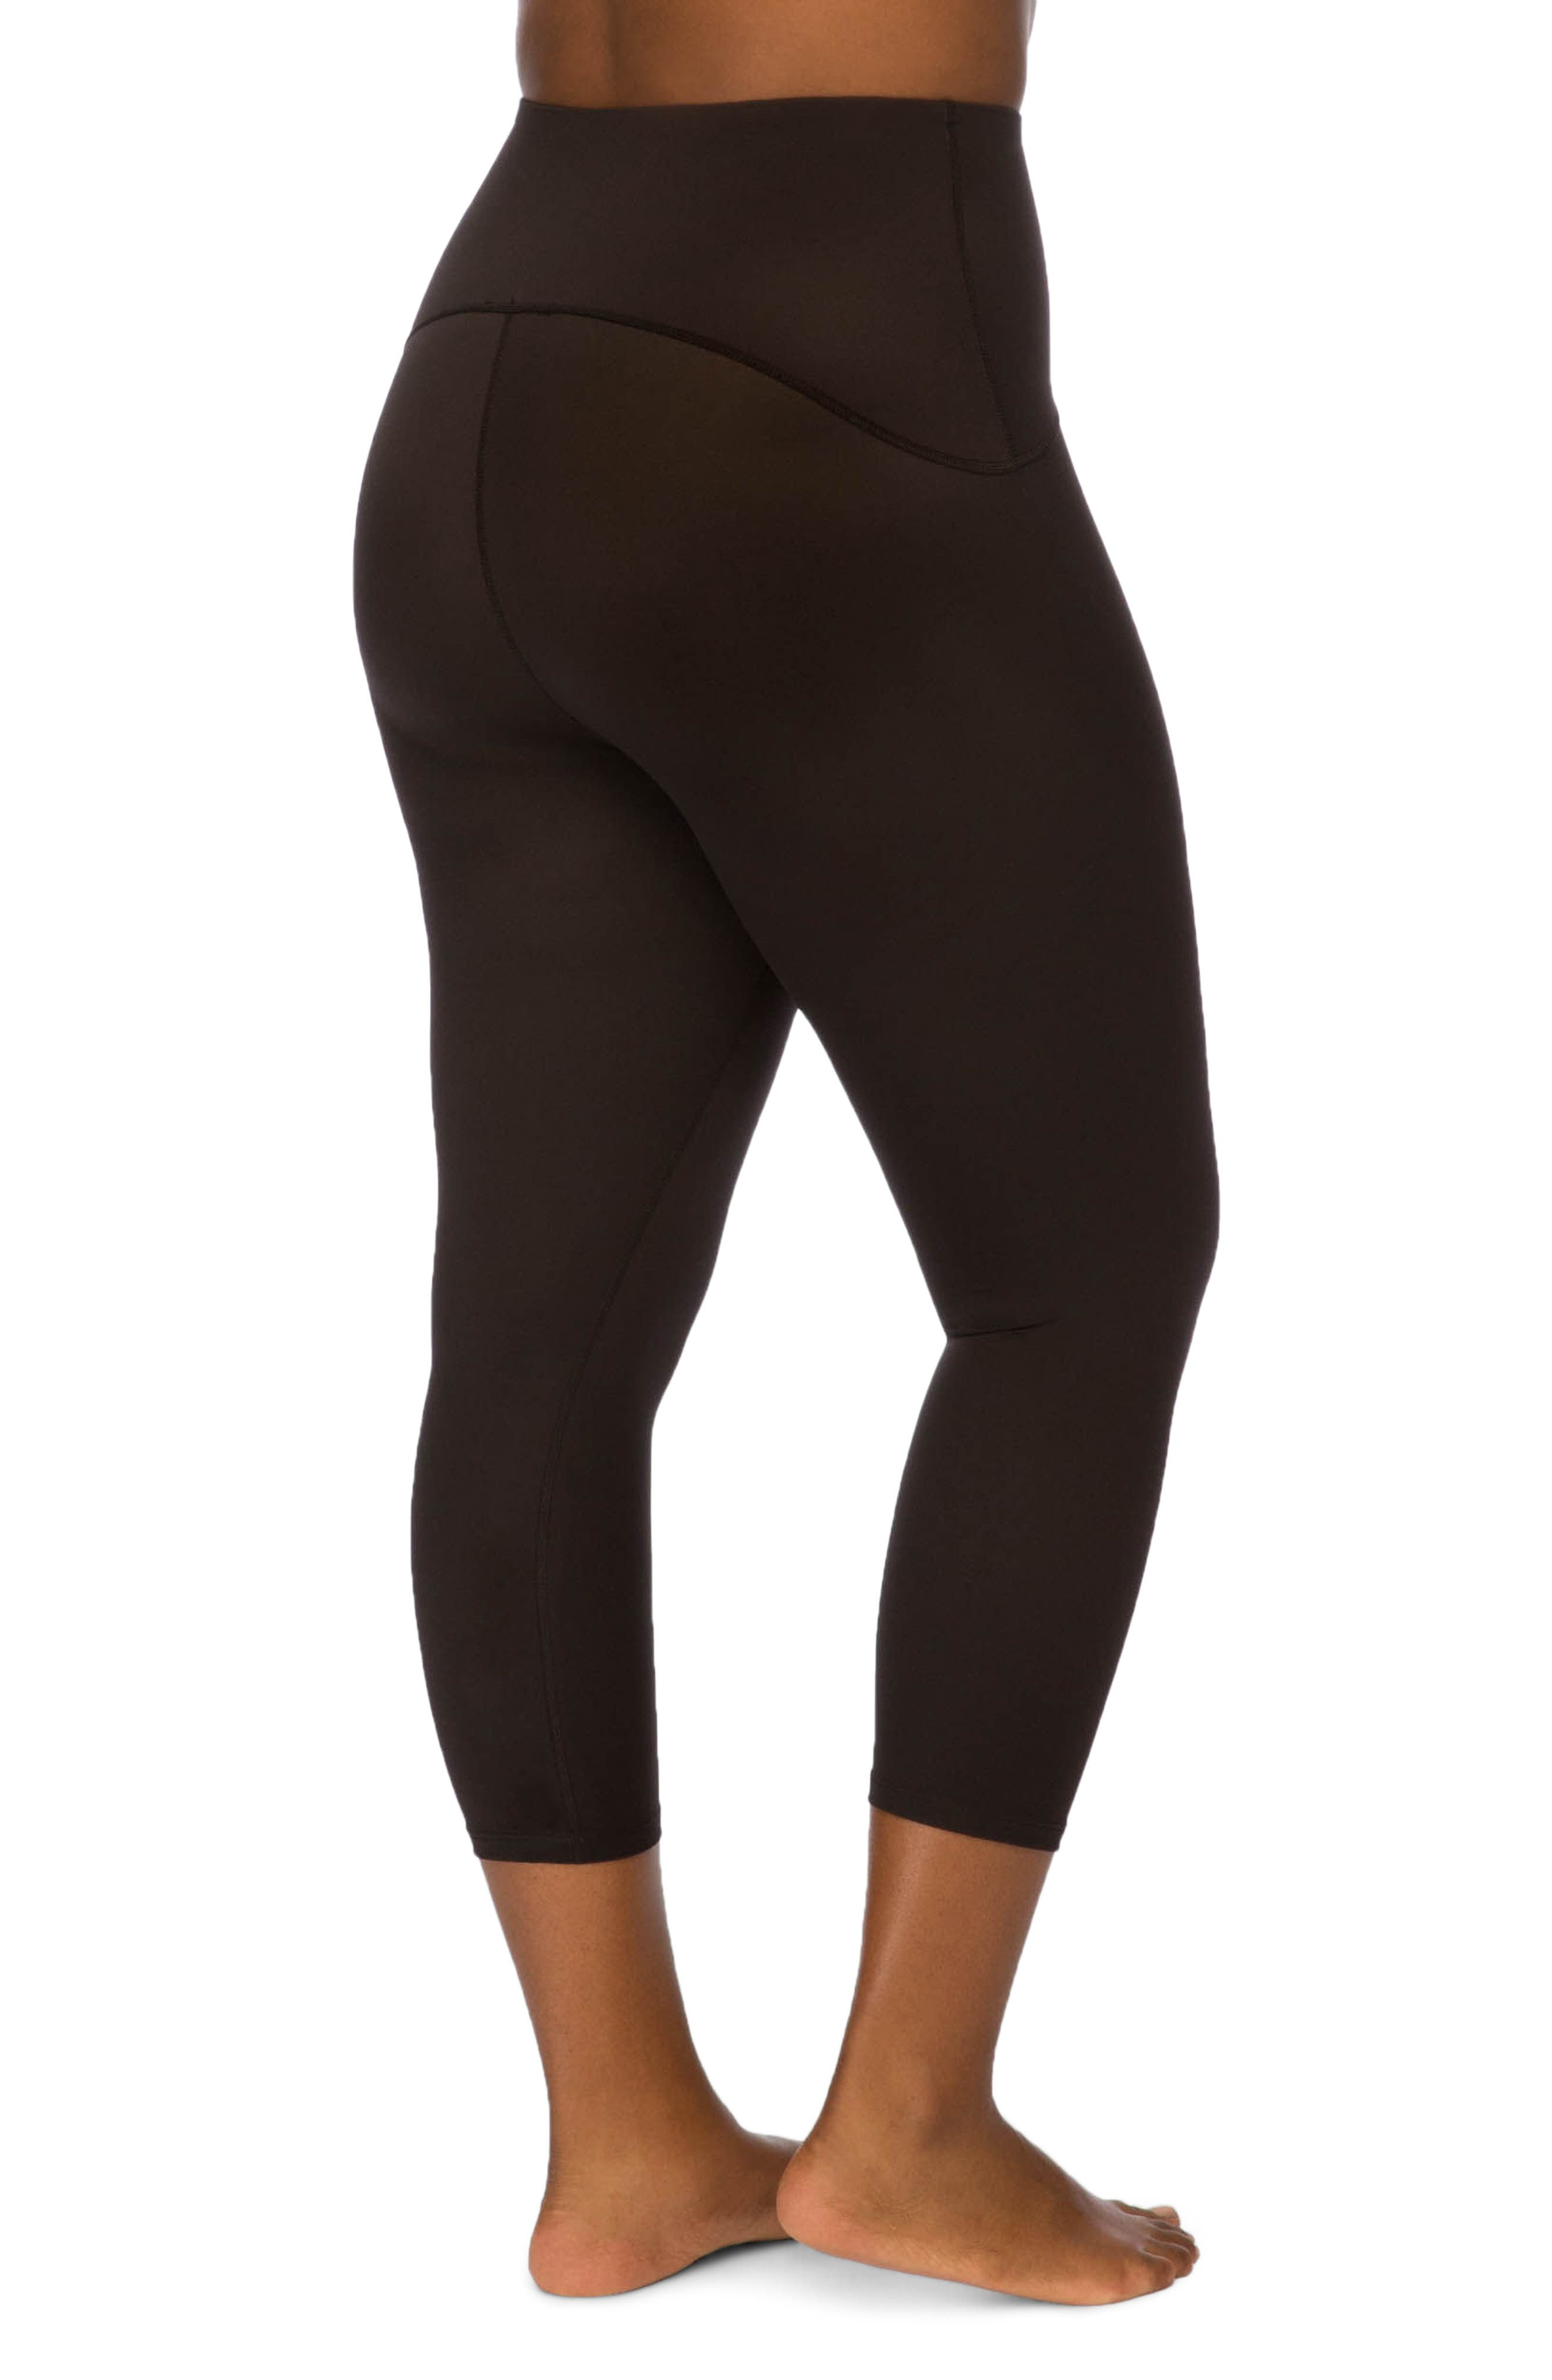 db0d7d7a667 Women s SPANX® Workout Clothes   Activewear